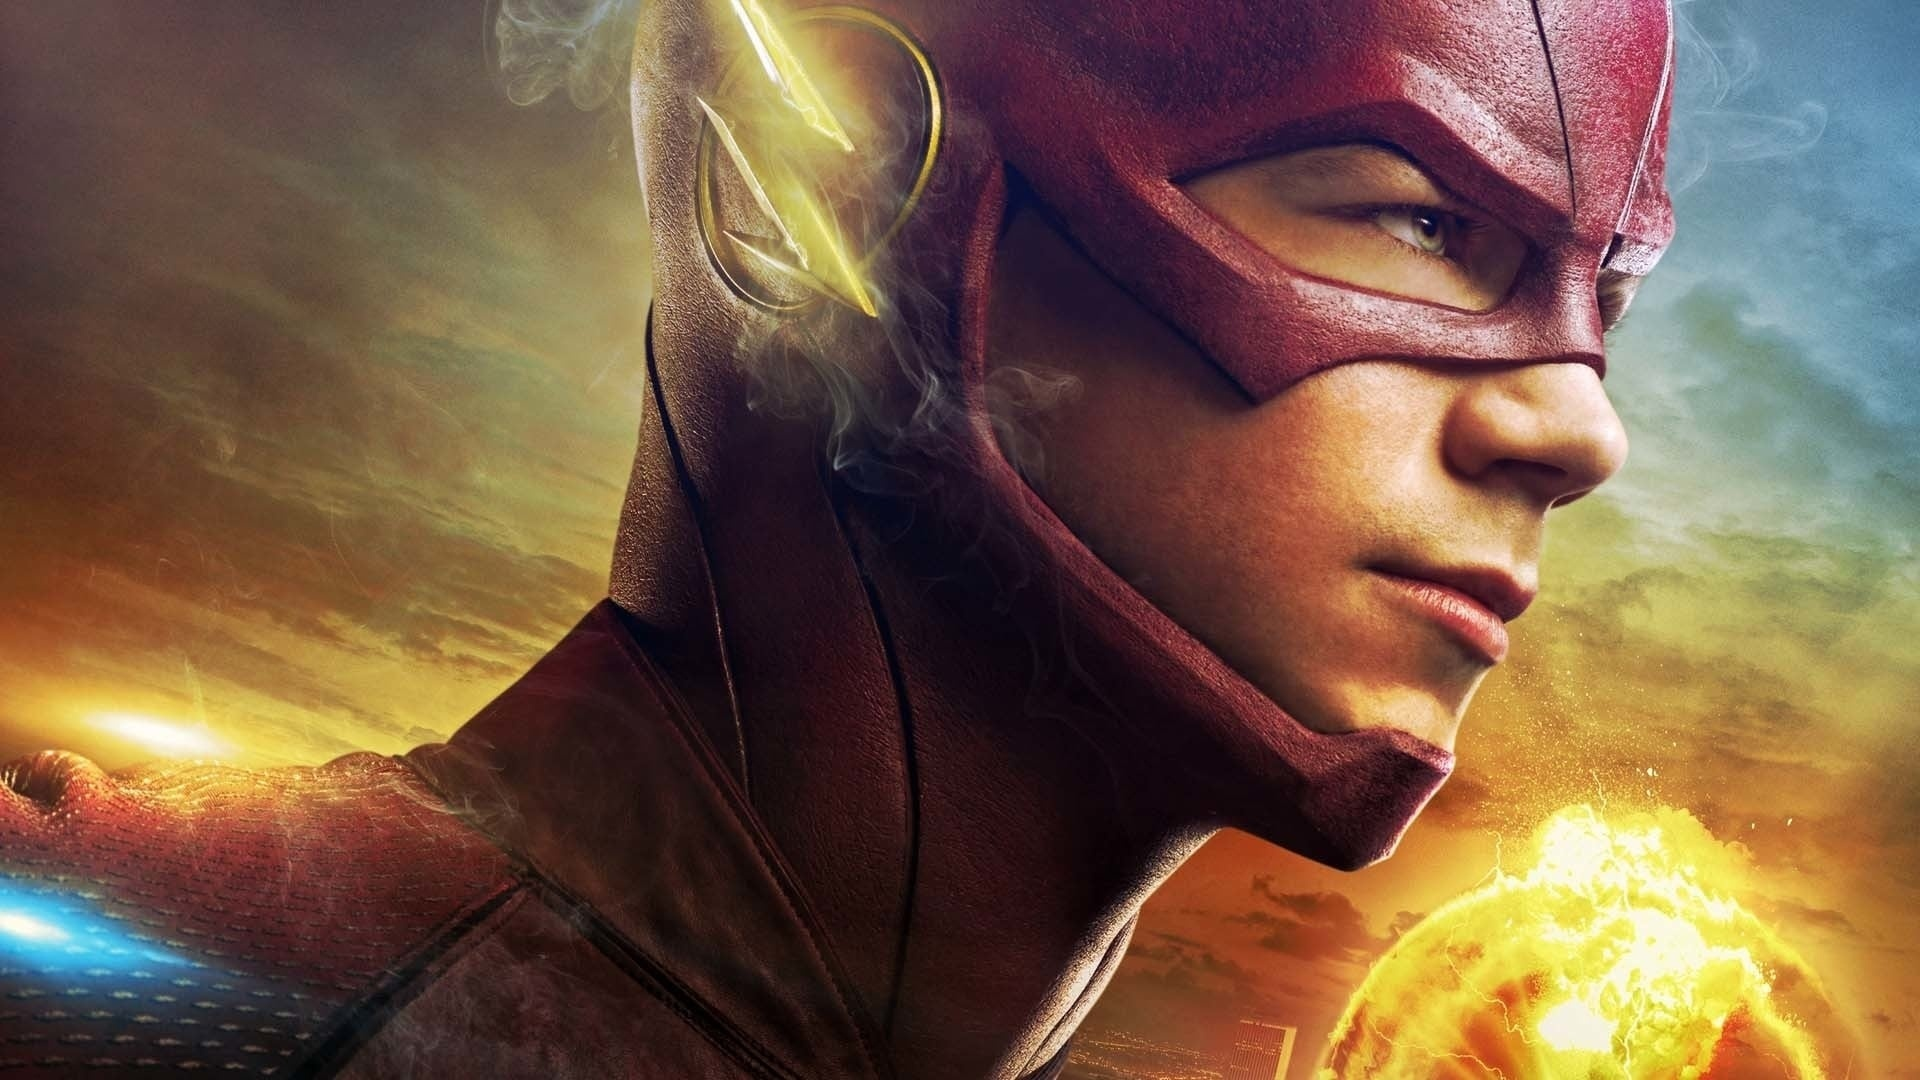 The Flash free background